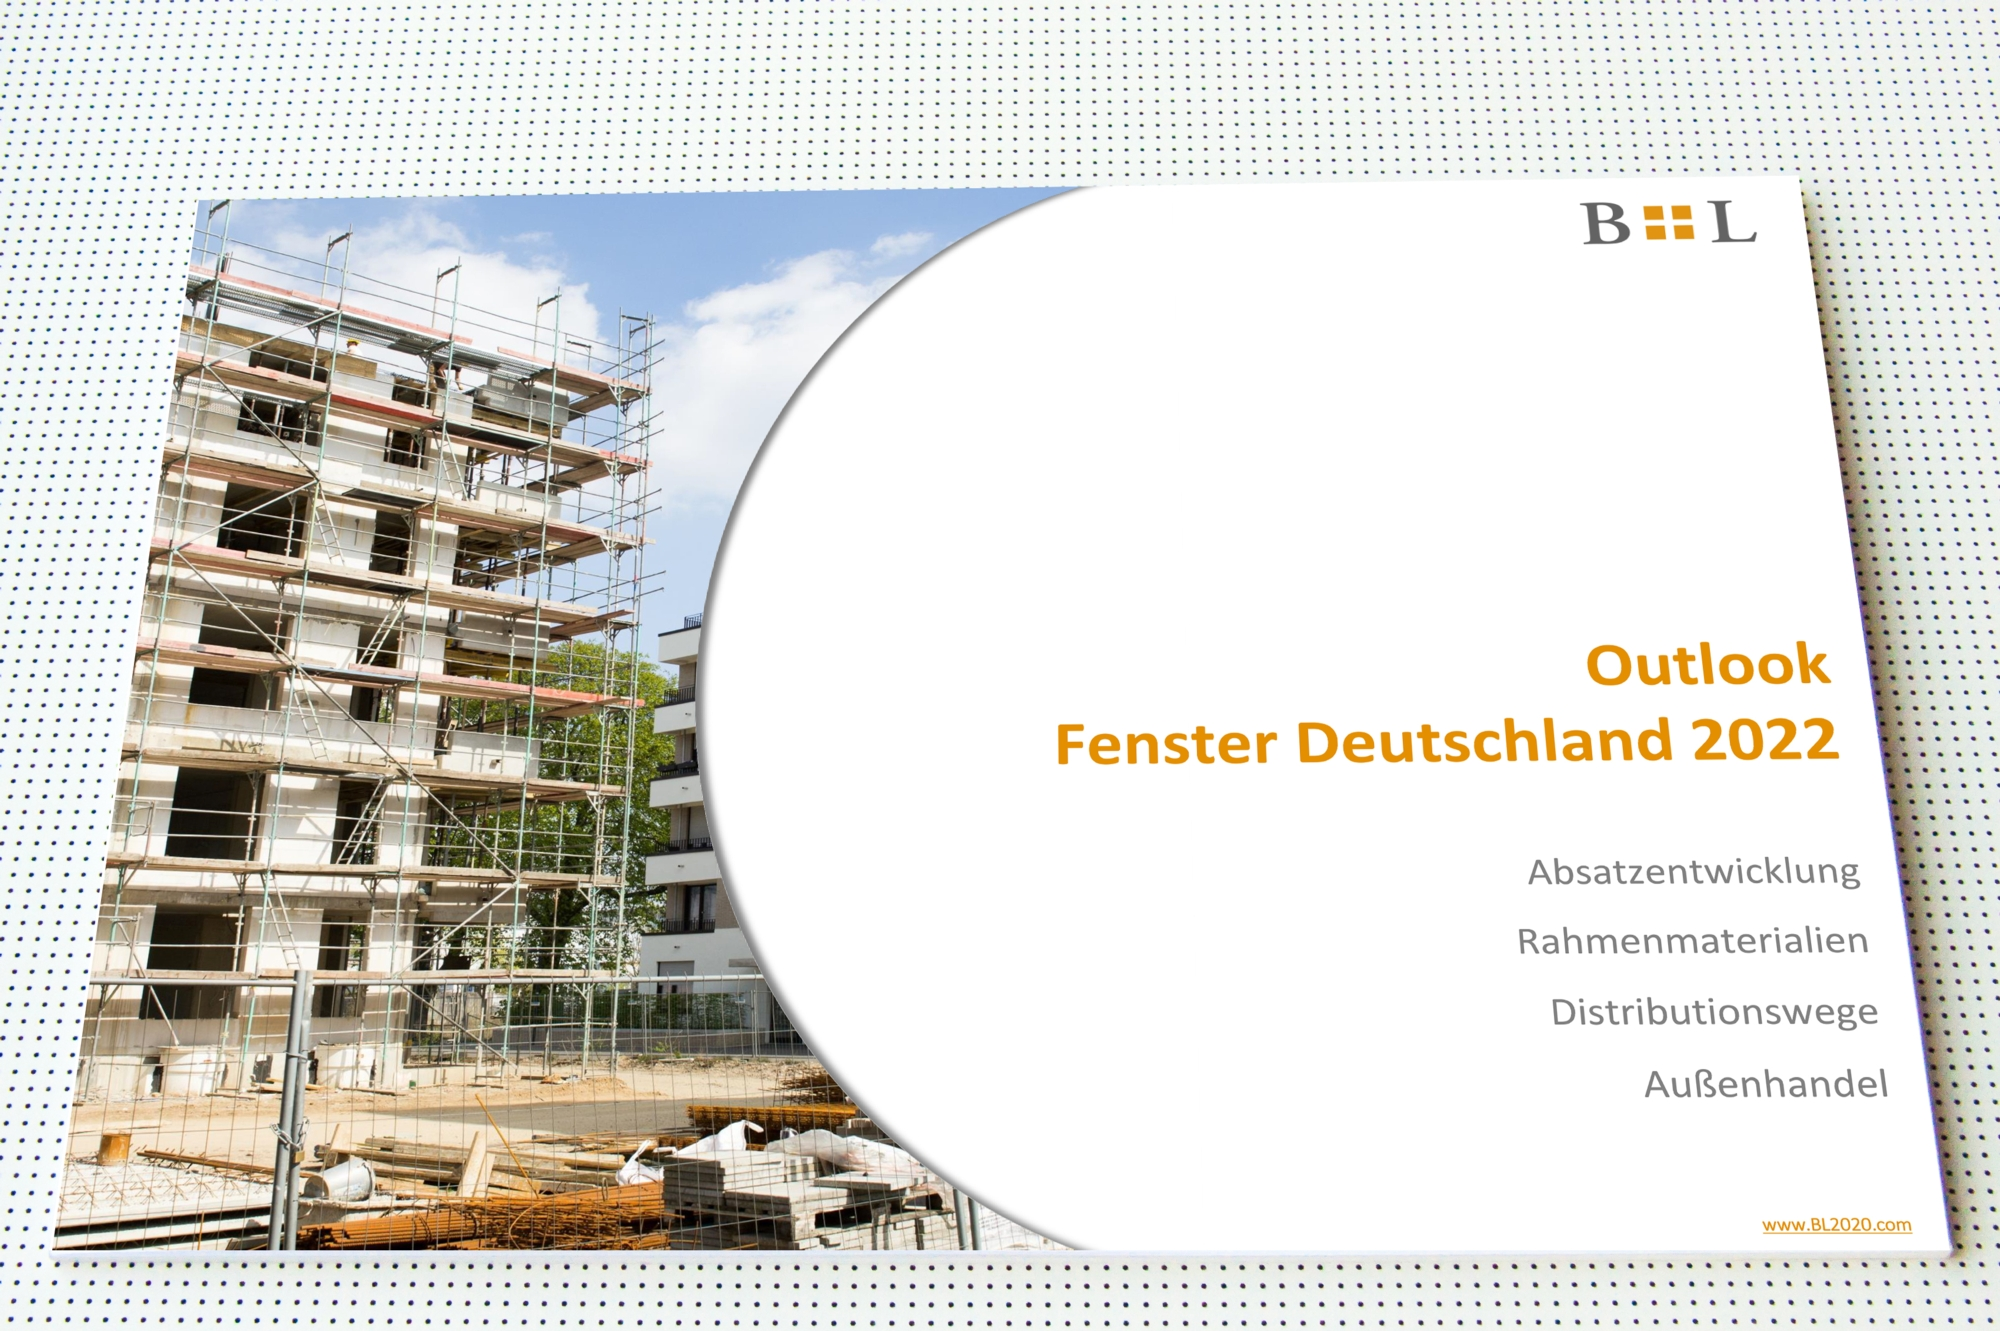 B+L Outlook Fenster 2022